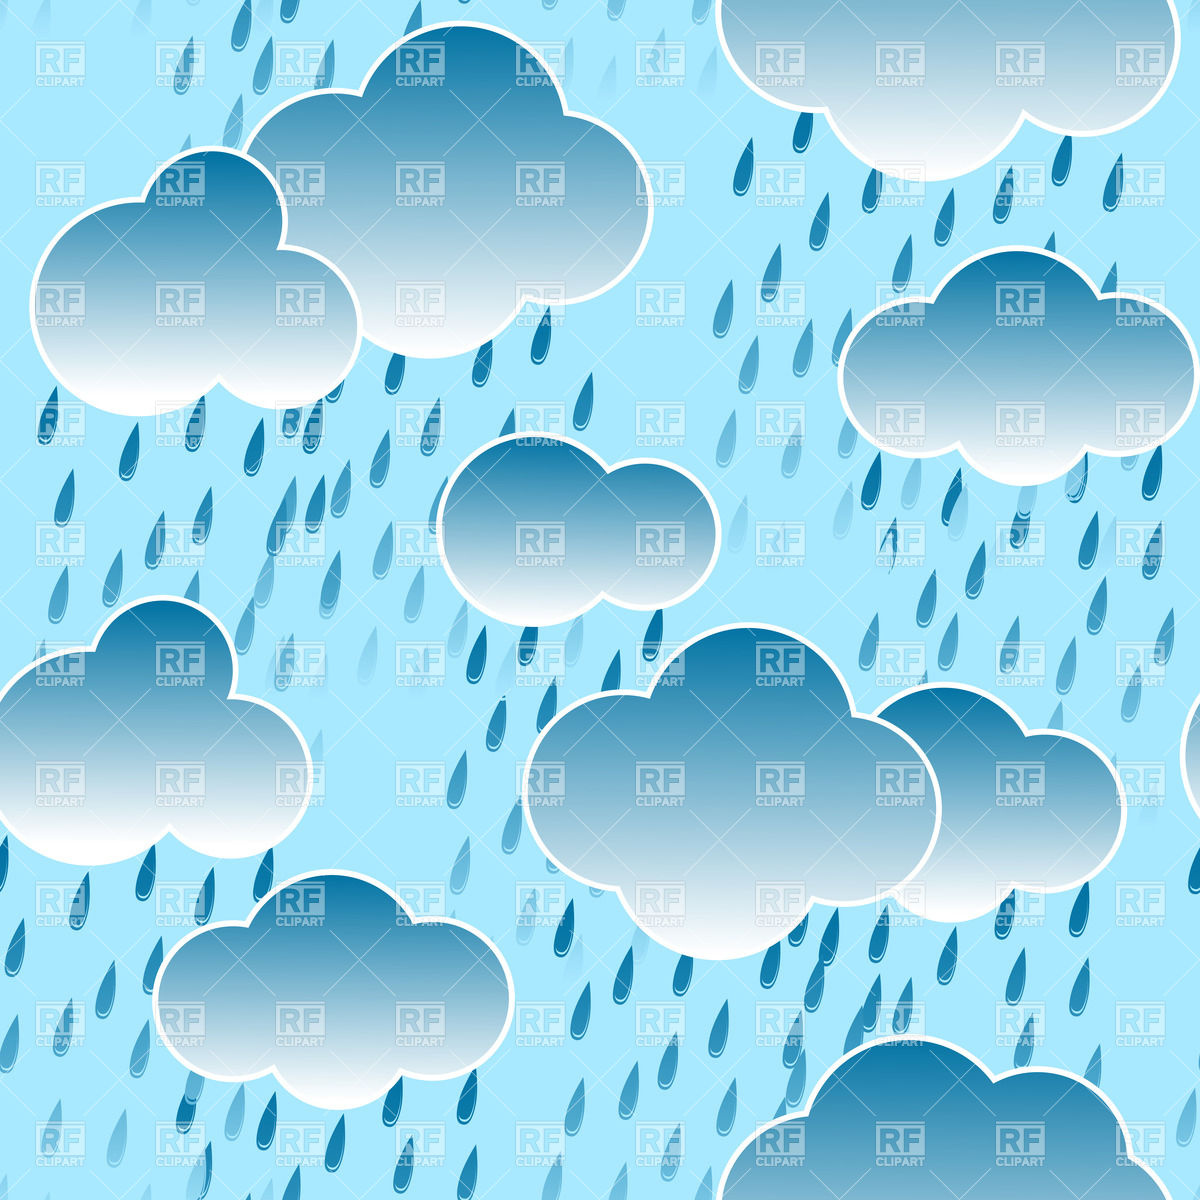 Background clipart rainy Vector clouds sky collection seamless